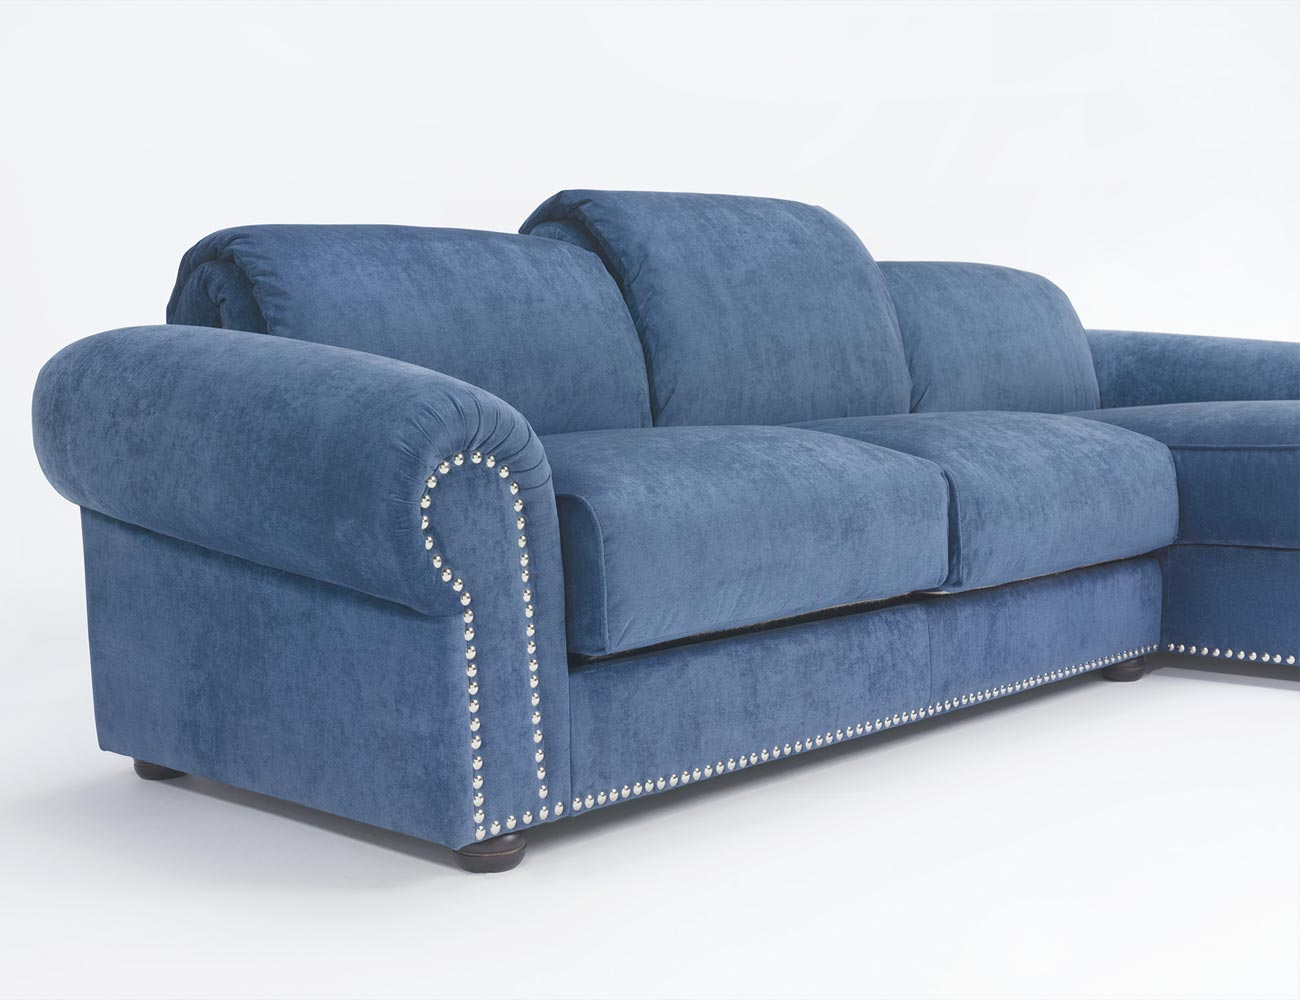 Sofa chaiselongue gran lujo decorativo azul 113